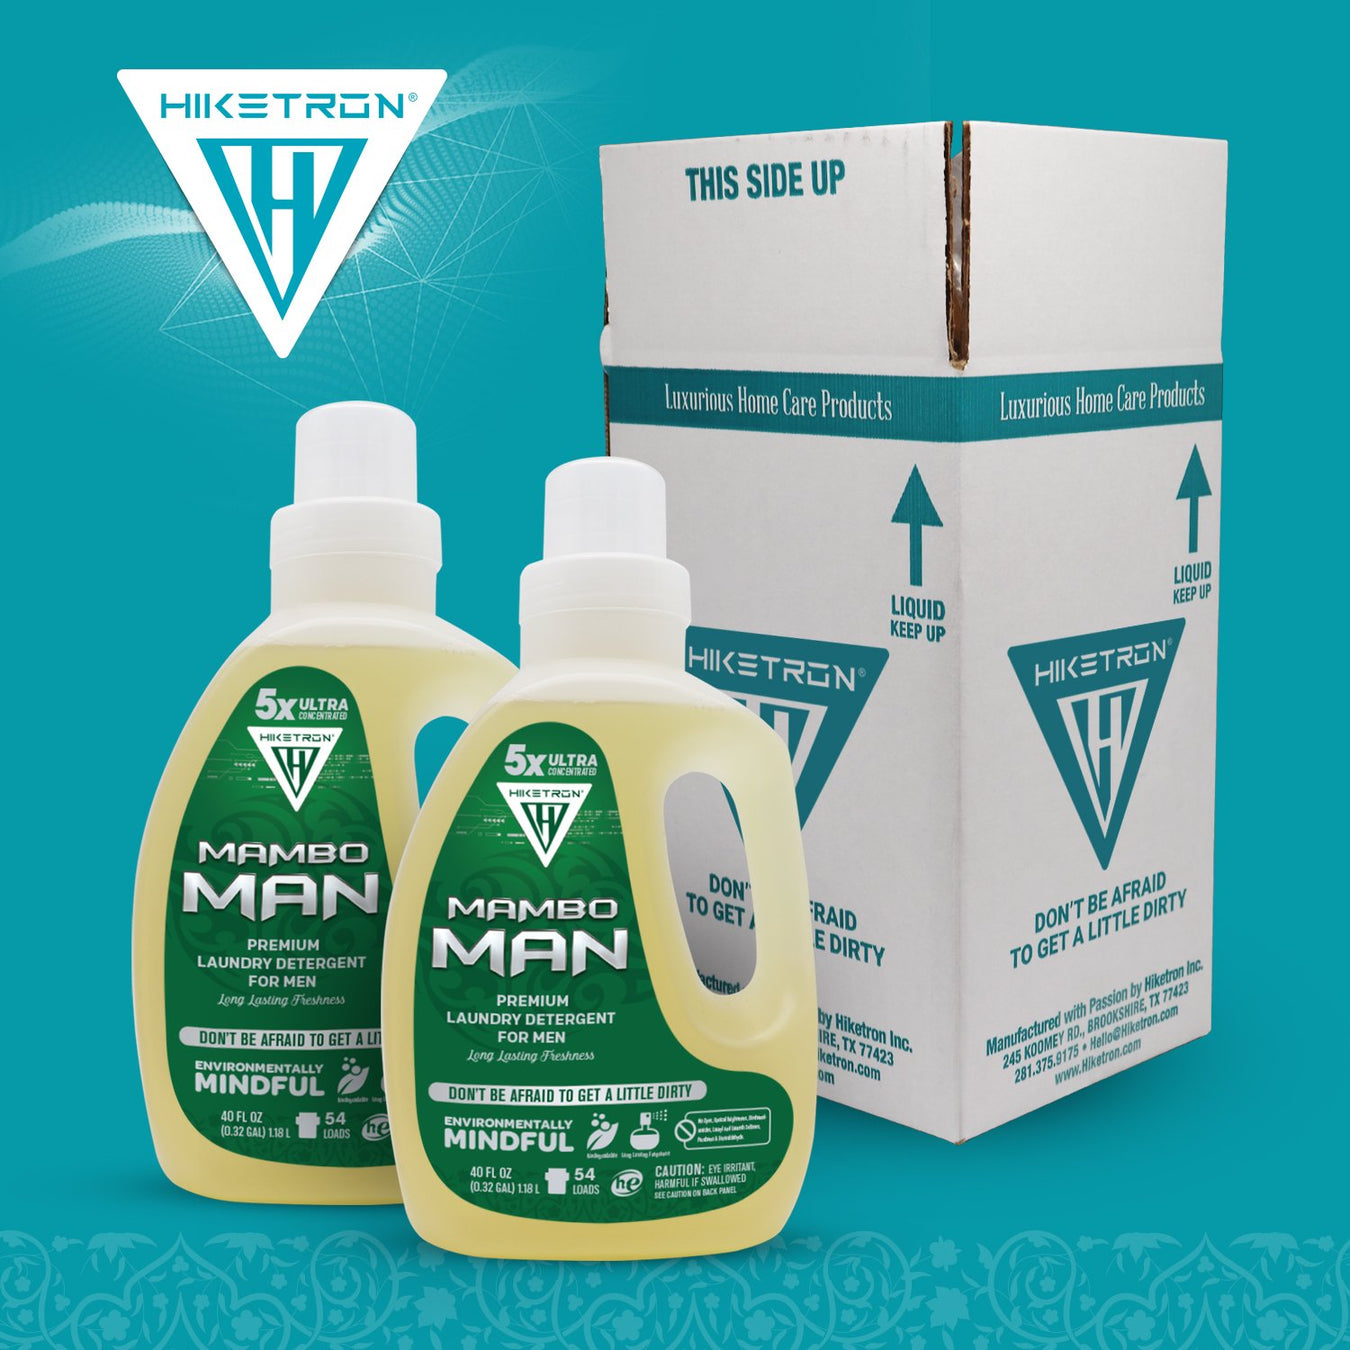 Hiketron Masculine Laundry Detergent